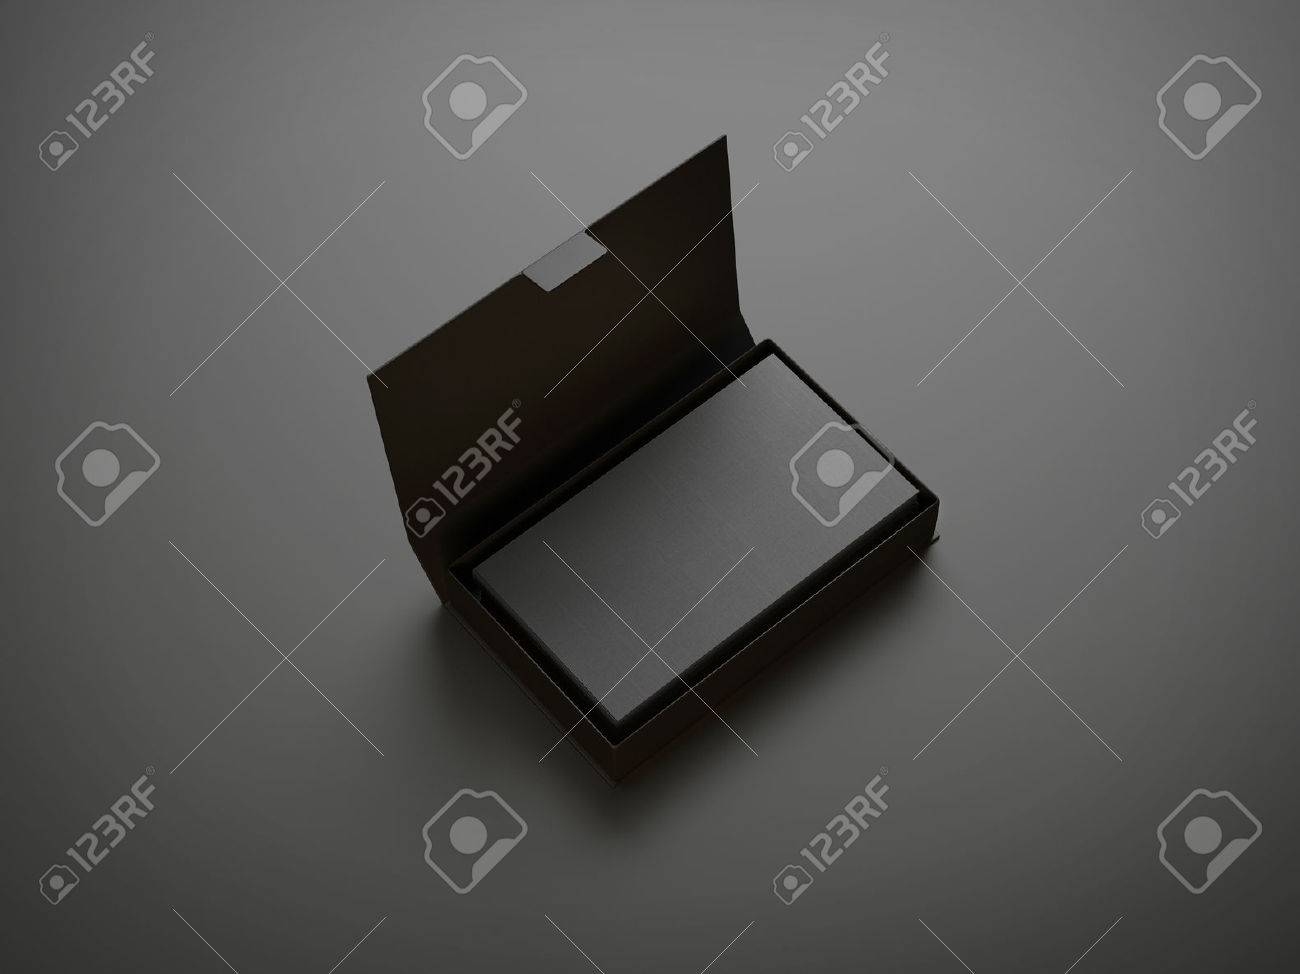 Black Business Card In The Box Stock Photo, Picture And Royalty Free ...